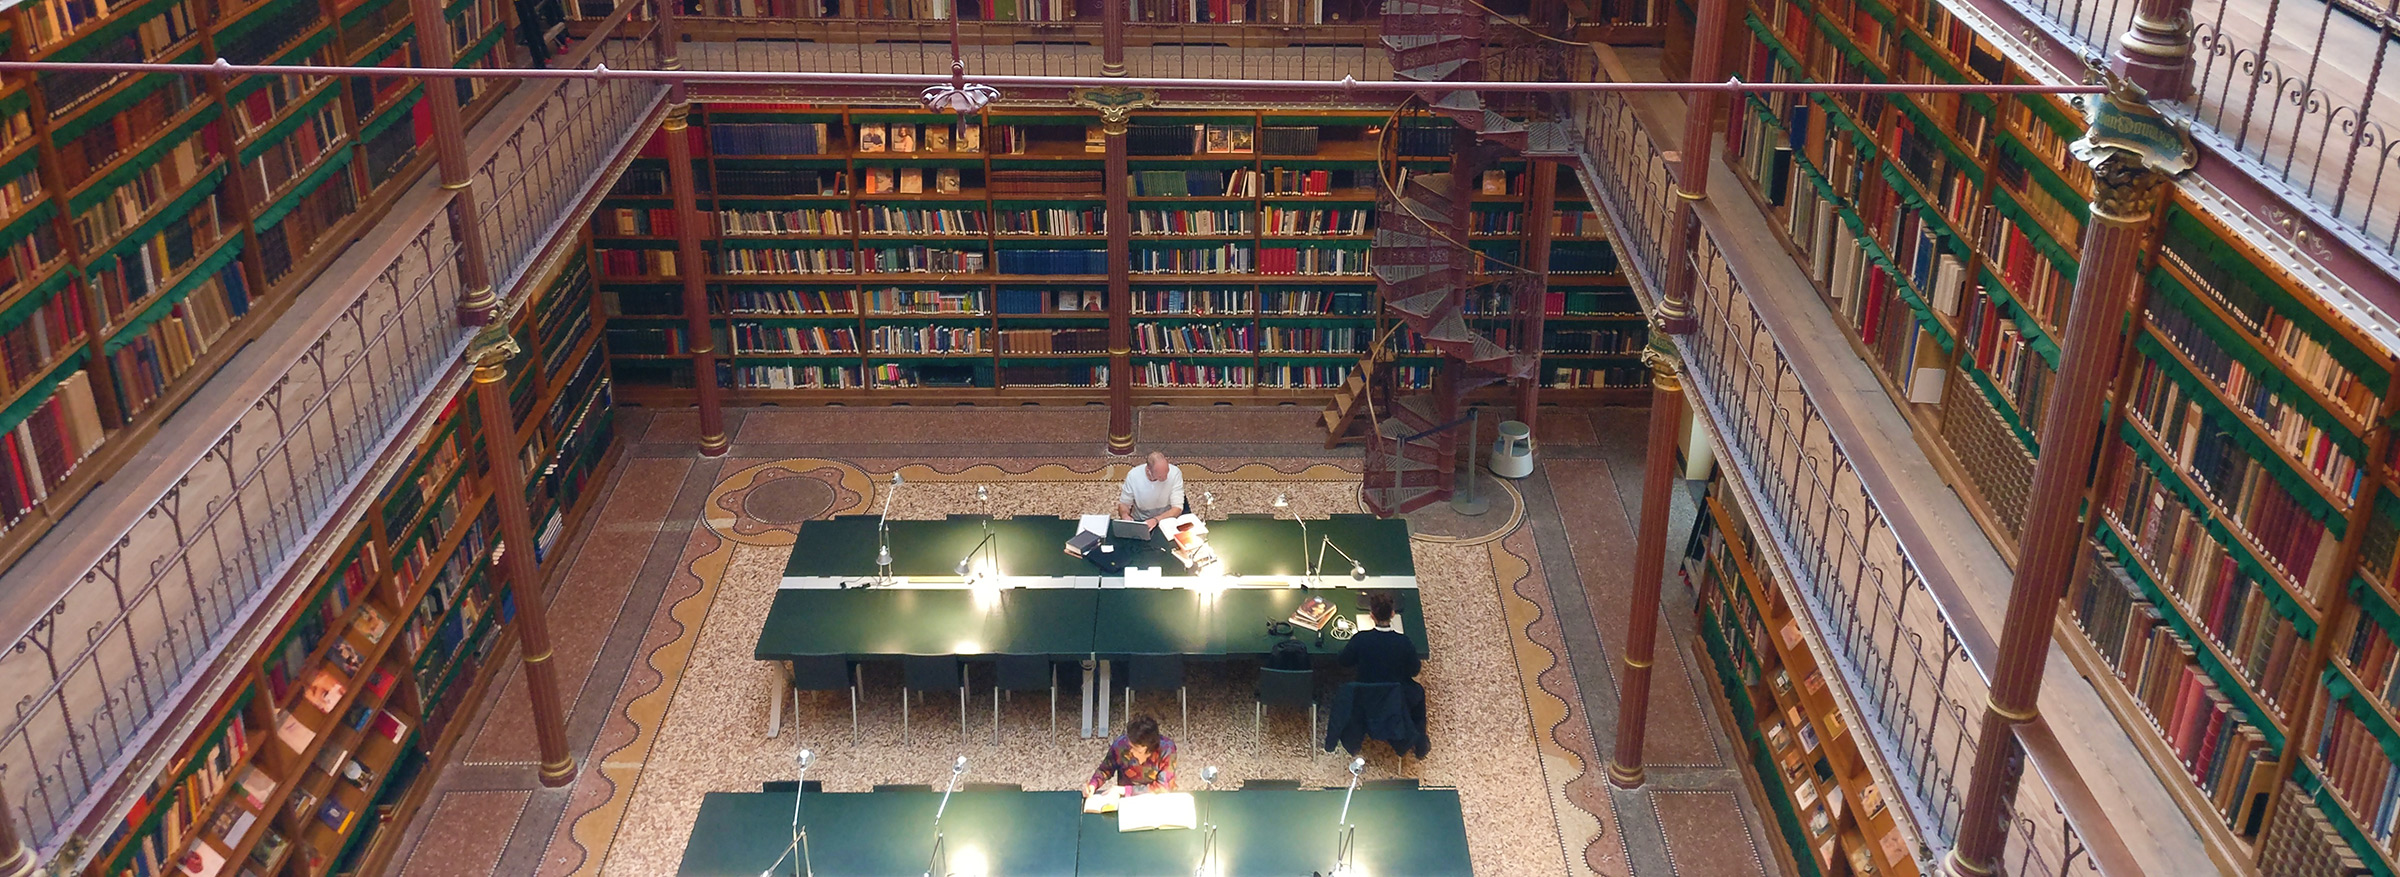 Elyzabeth Gorman Researching at the Rijksmuseum Library